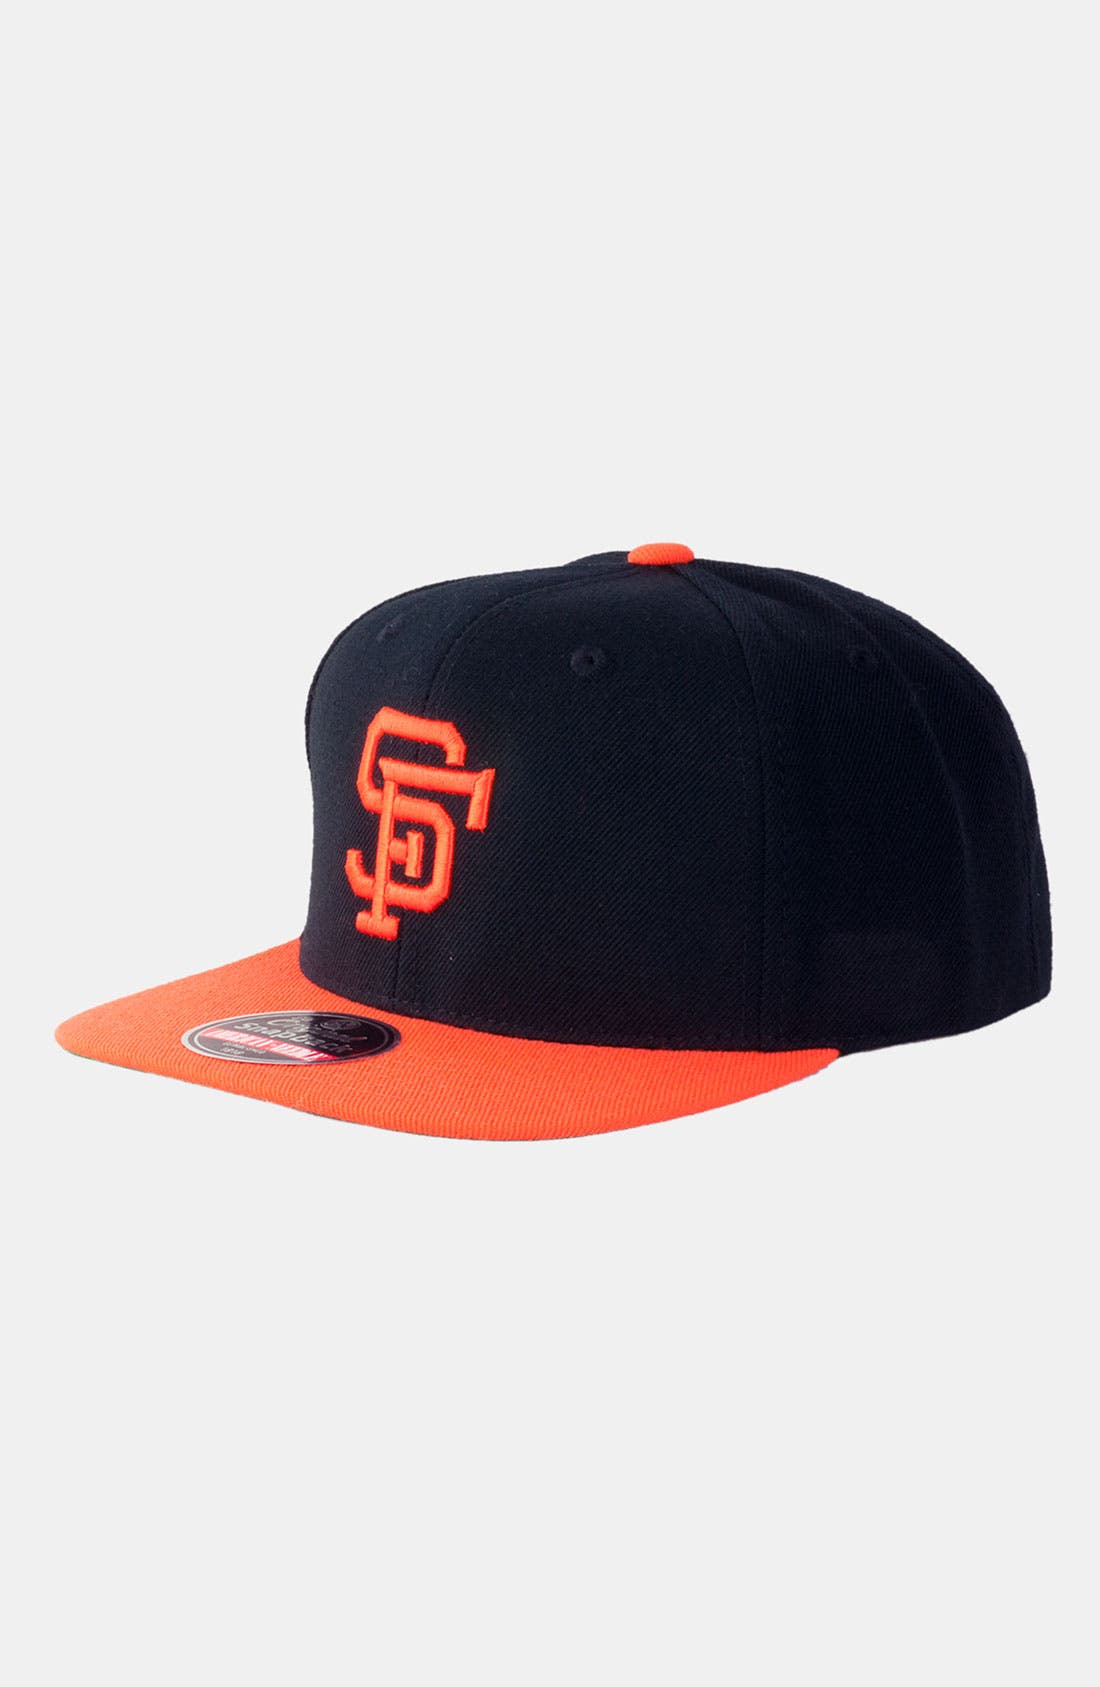 Main Image - American Needle 'San Francisco Giants - Cooperstown' Snapback Baseball Cap